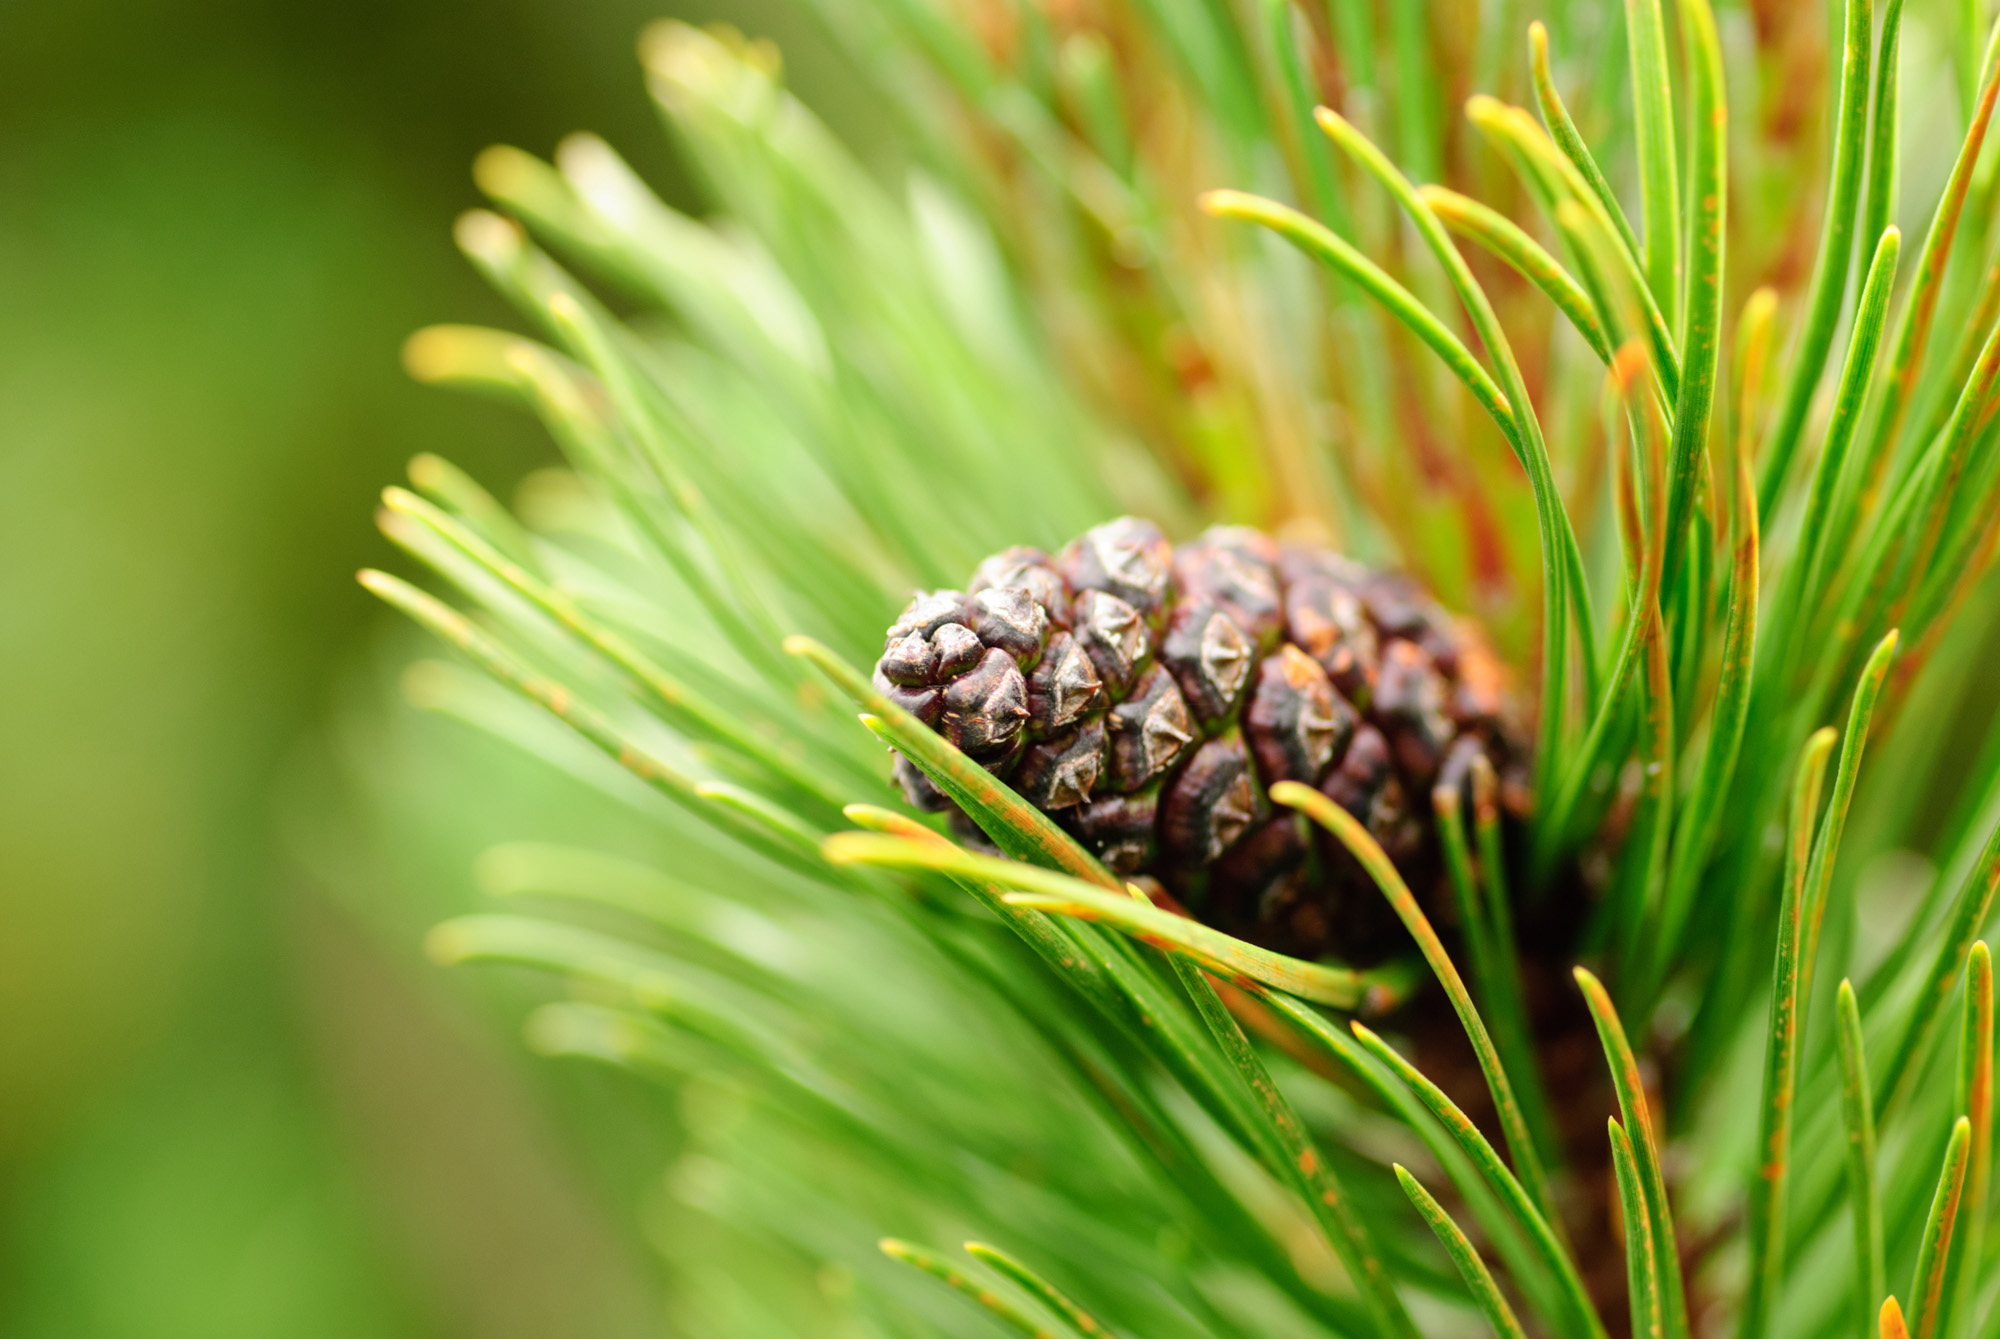 Red pine bark extract is extremely well researched for it's circulation, antioxidant and collagen protecting properties